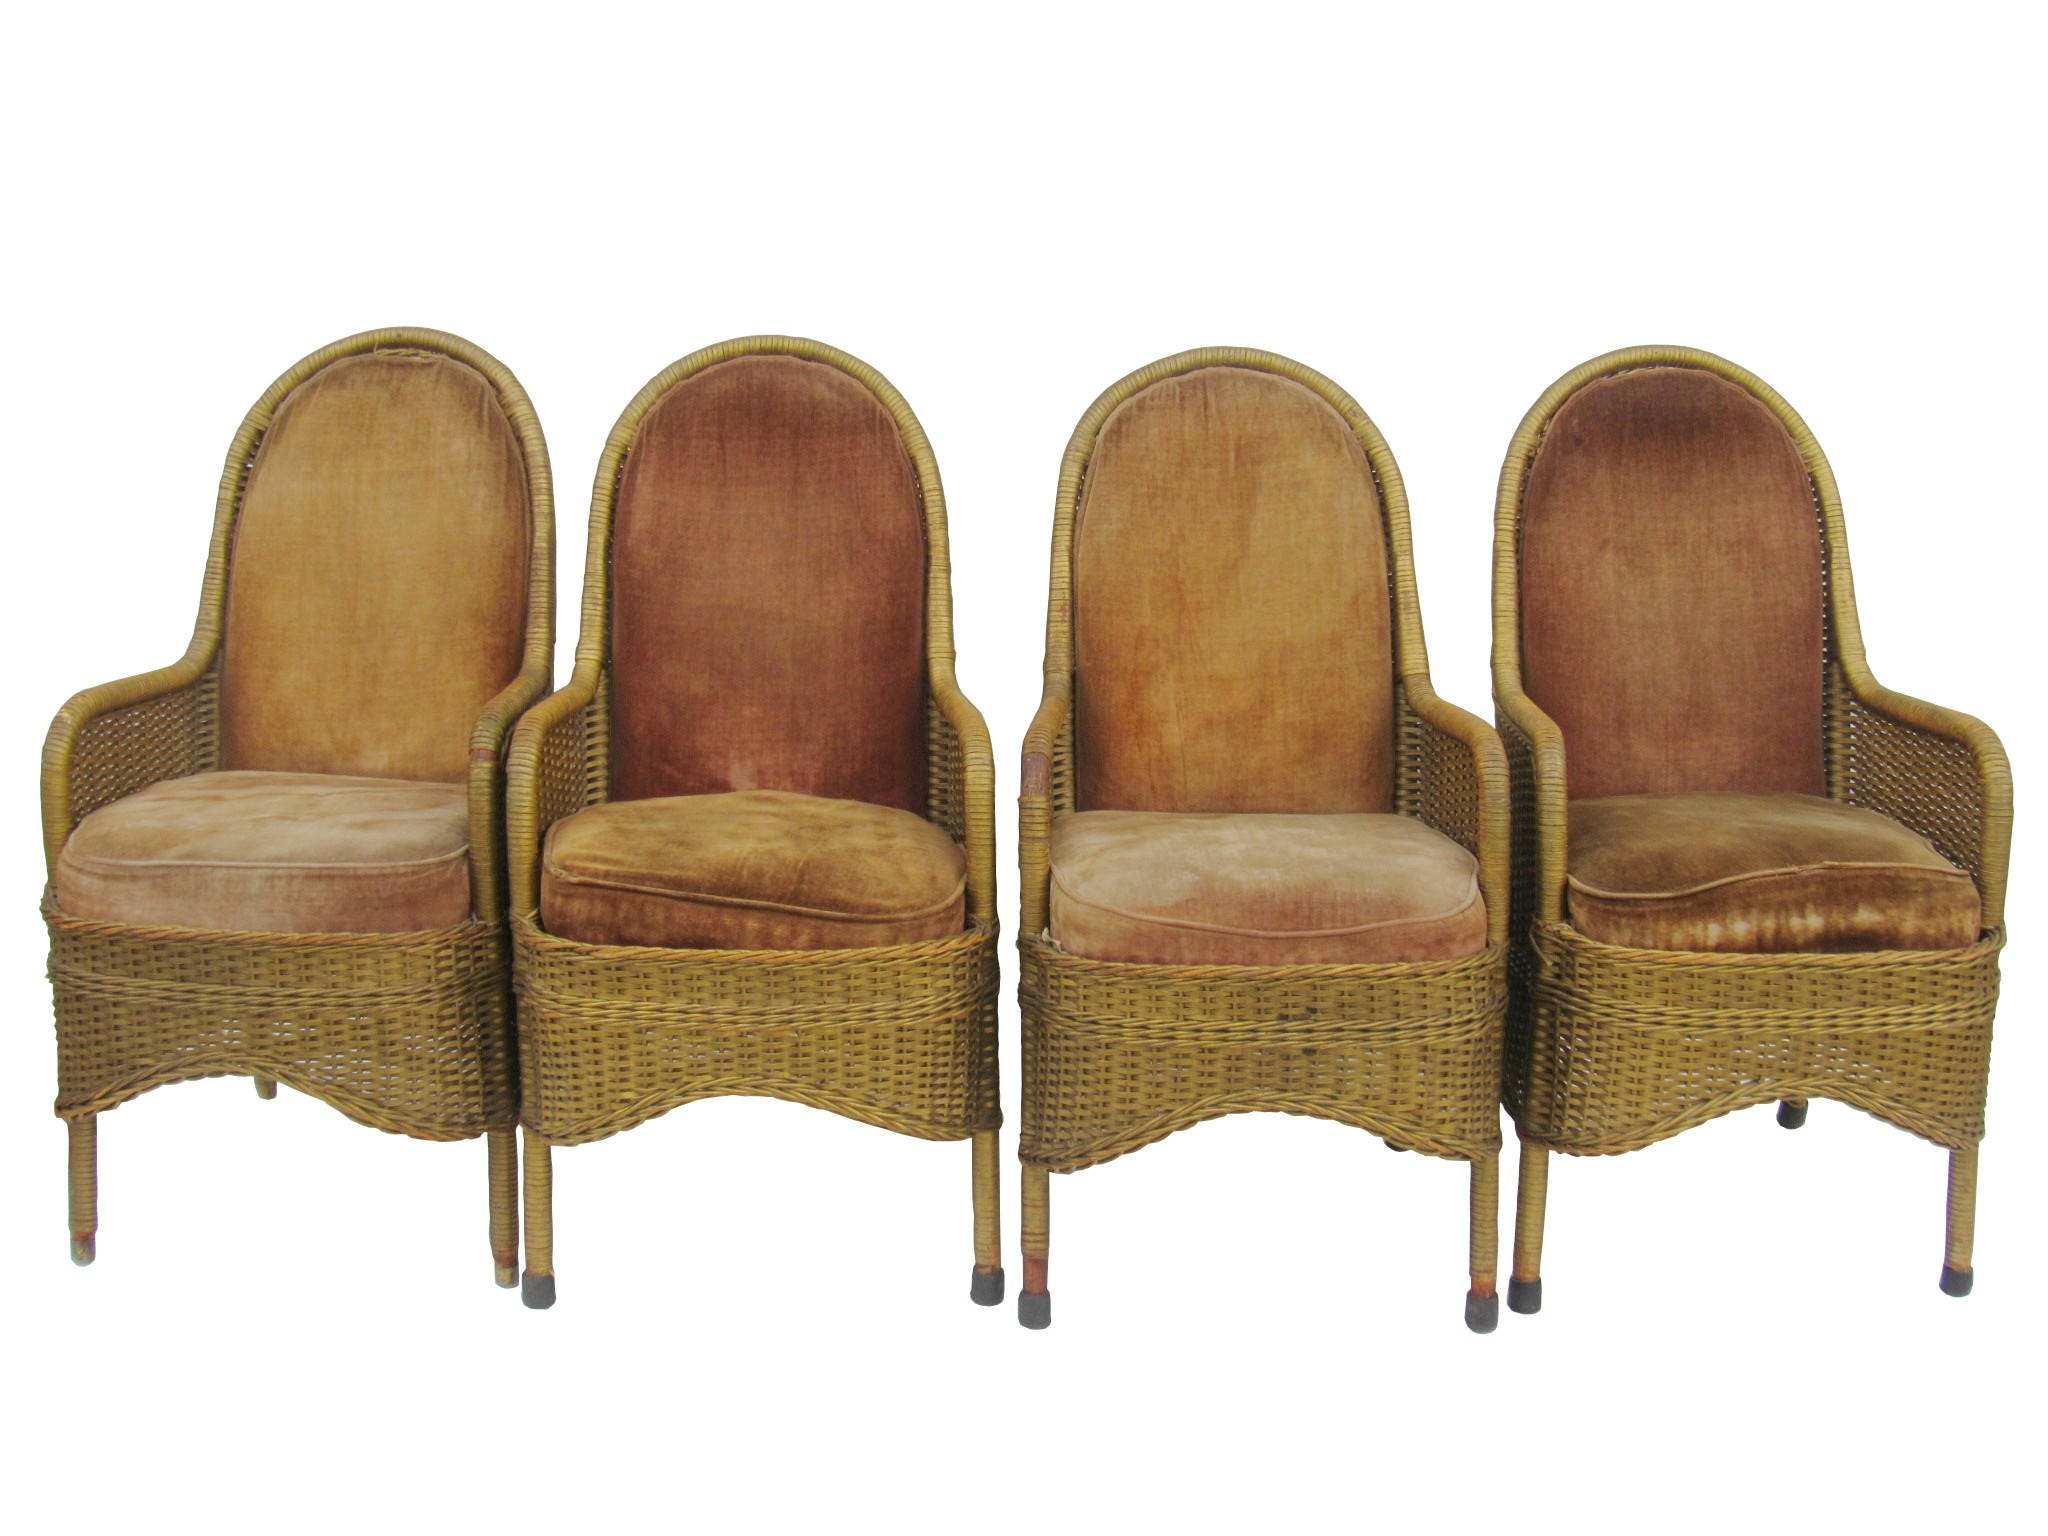 Heywood Wakefield 1930u0027s Wicker Chairs Antique Wicker And Velvet Club Chairs  Art Deco Wicker Dining Chairs